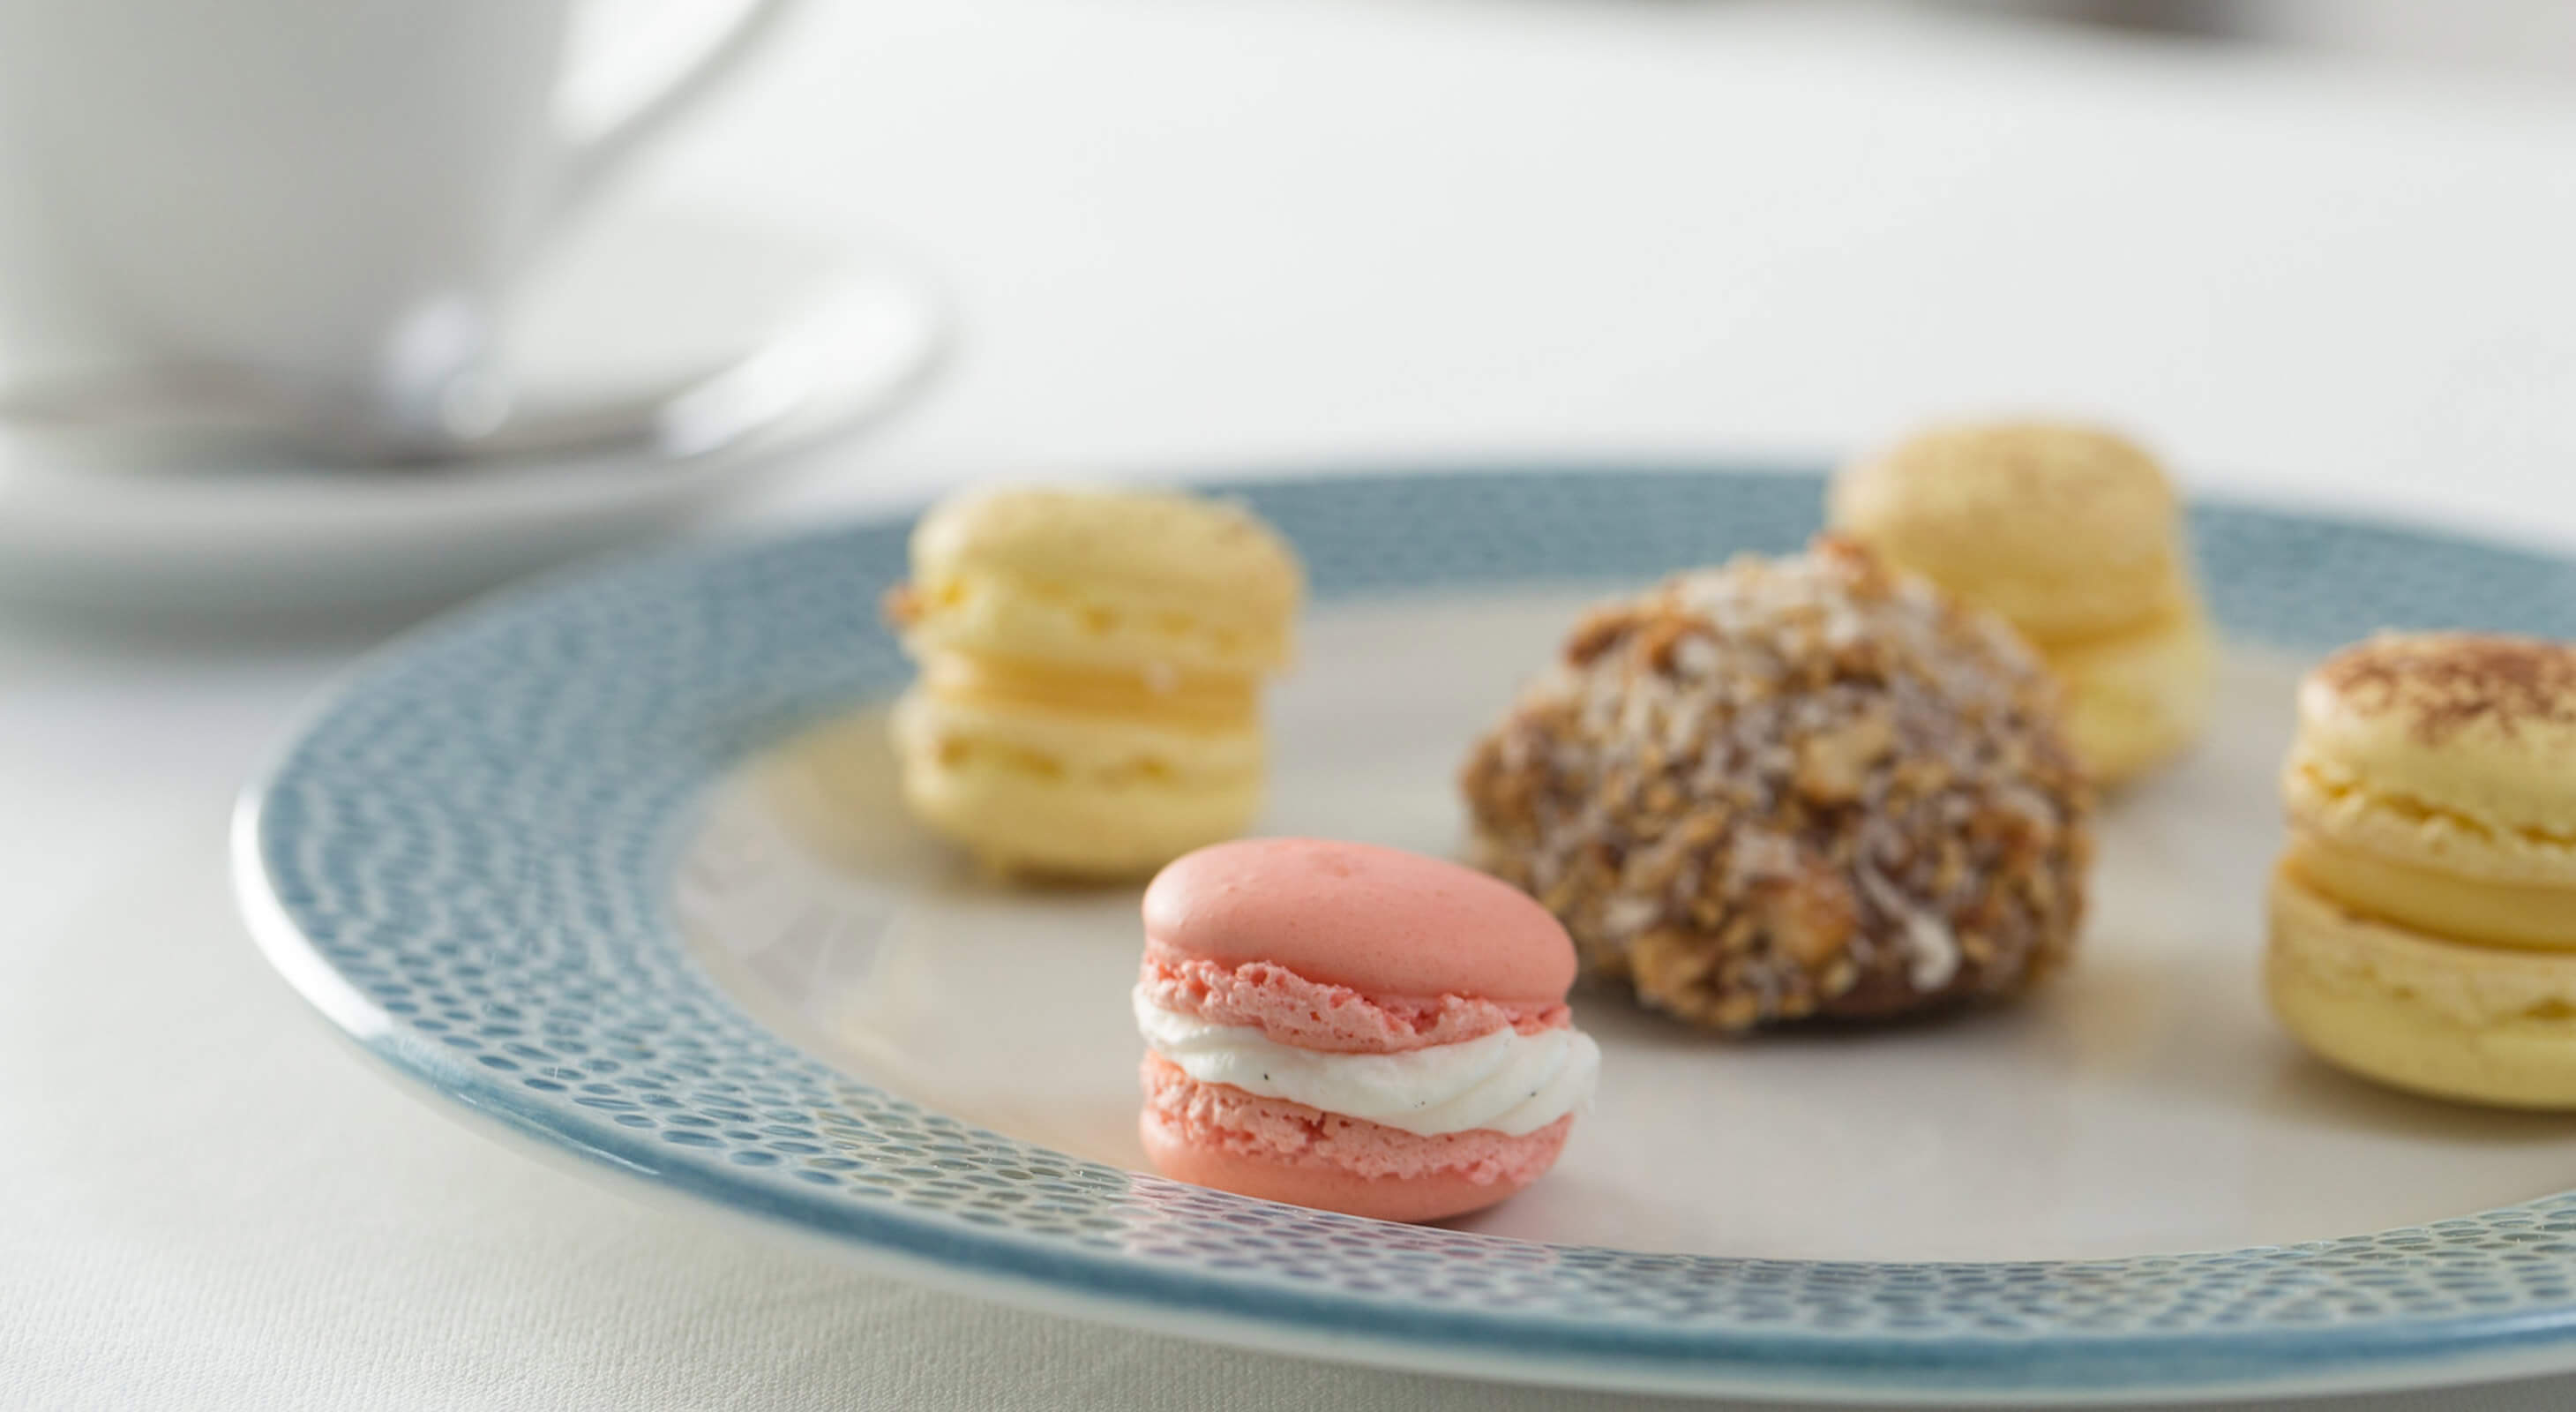 Colorful Macaron's on a plate